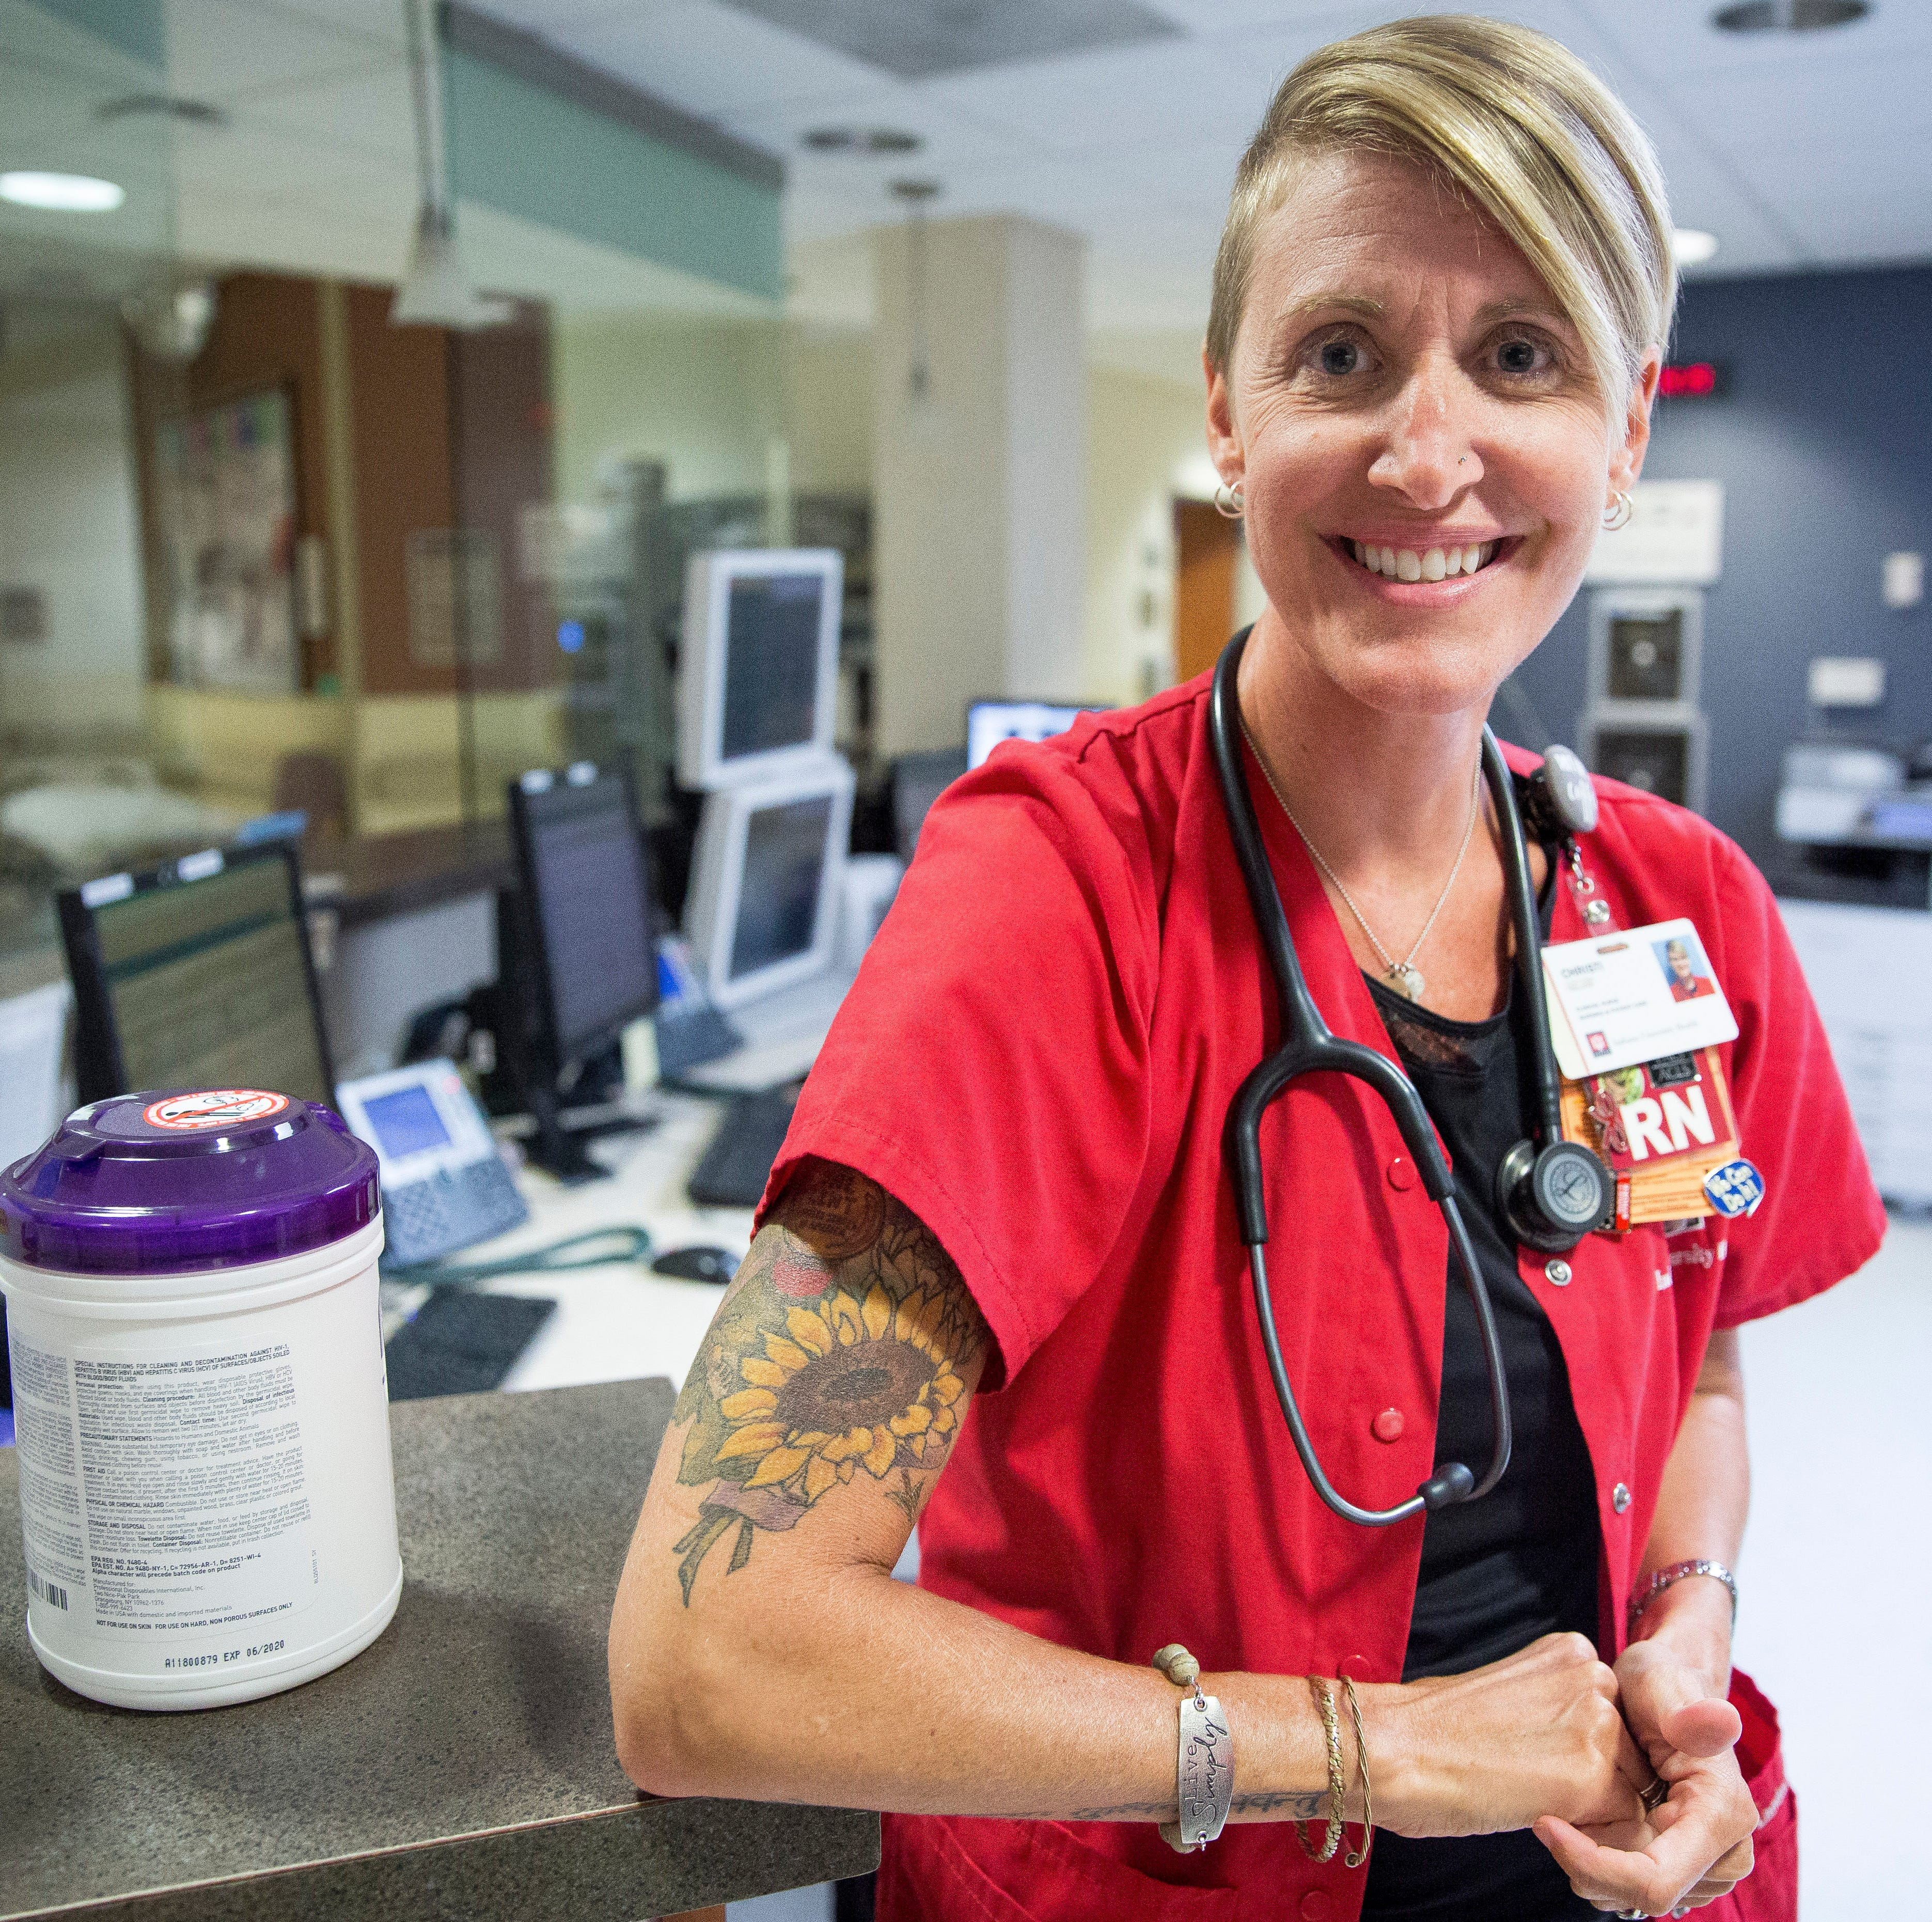 IU Health just loosened its employee tattoo policy. Is this happening at other workplaces?